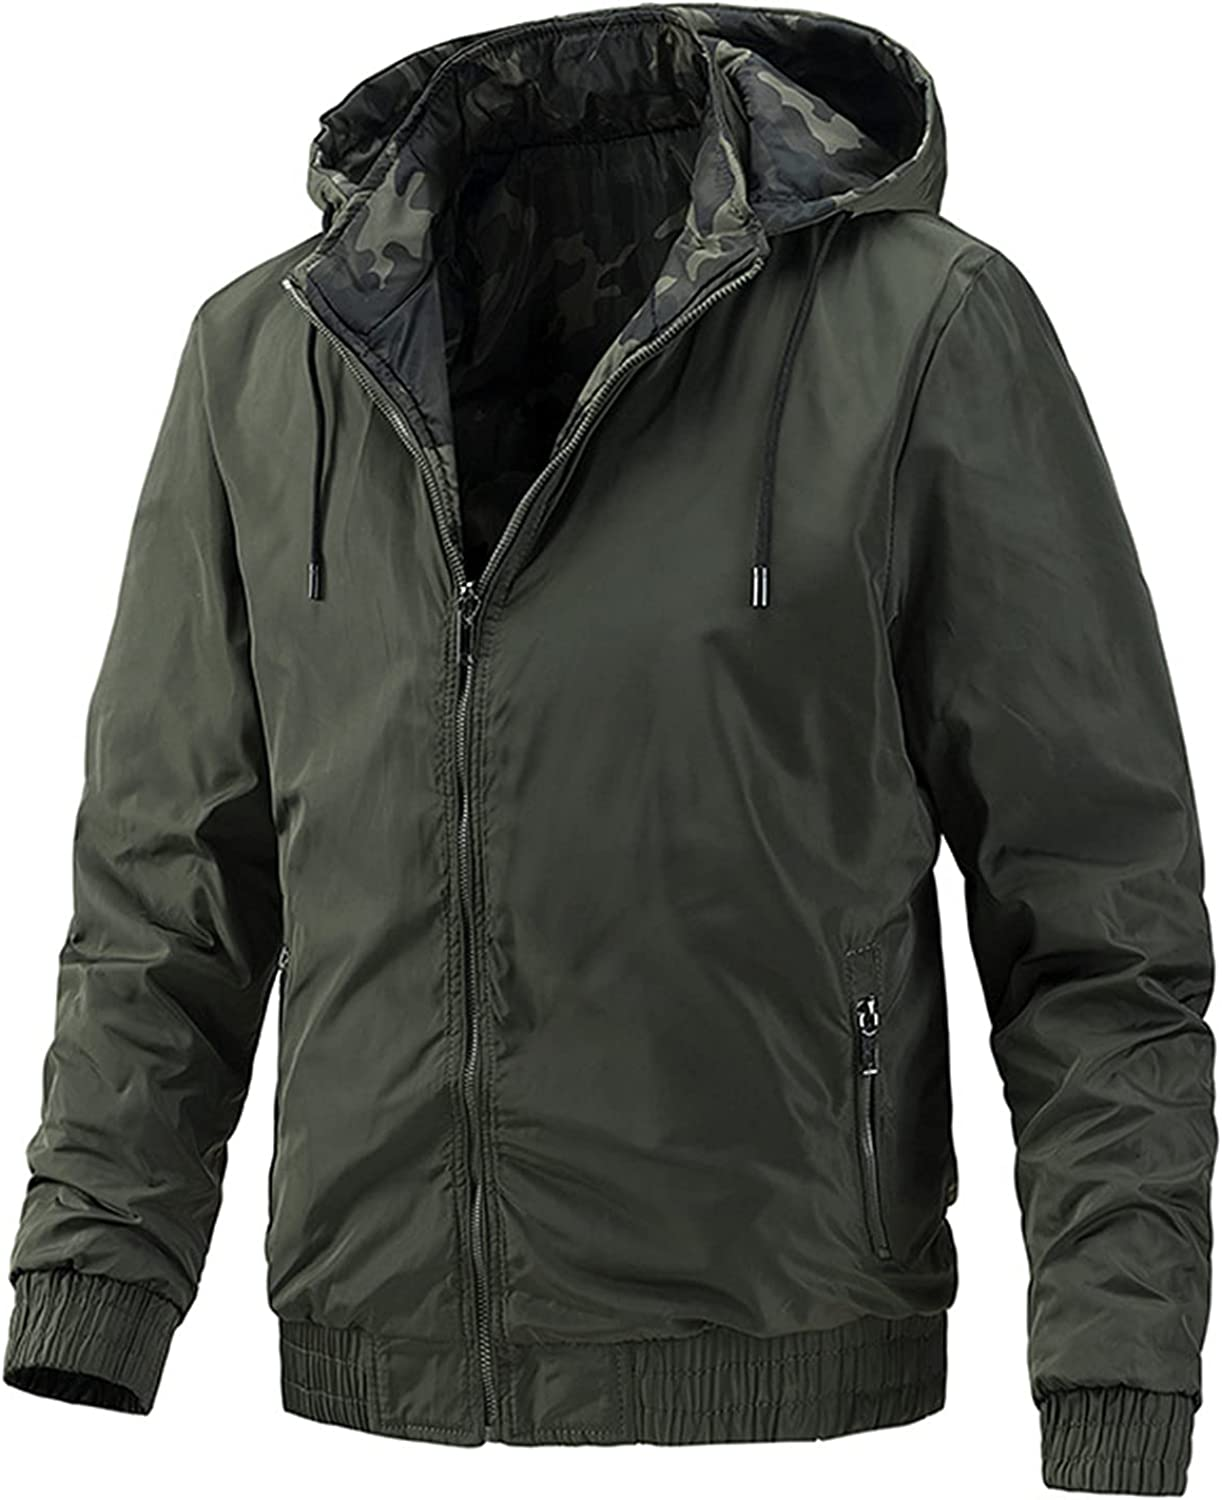 Men's Casual Hooded Jacket Baseball Uniform,Fashion Solid Color Coat,for Young People